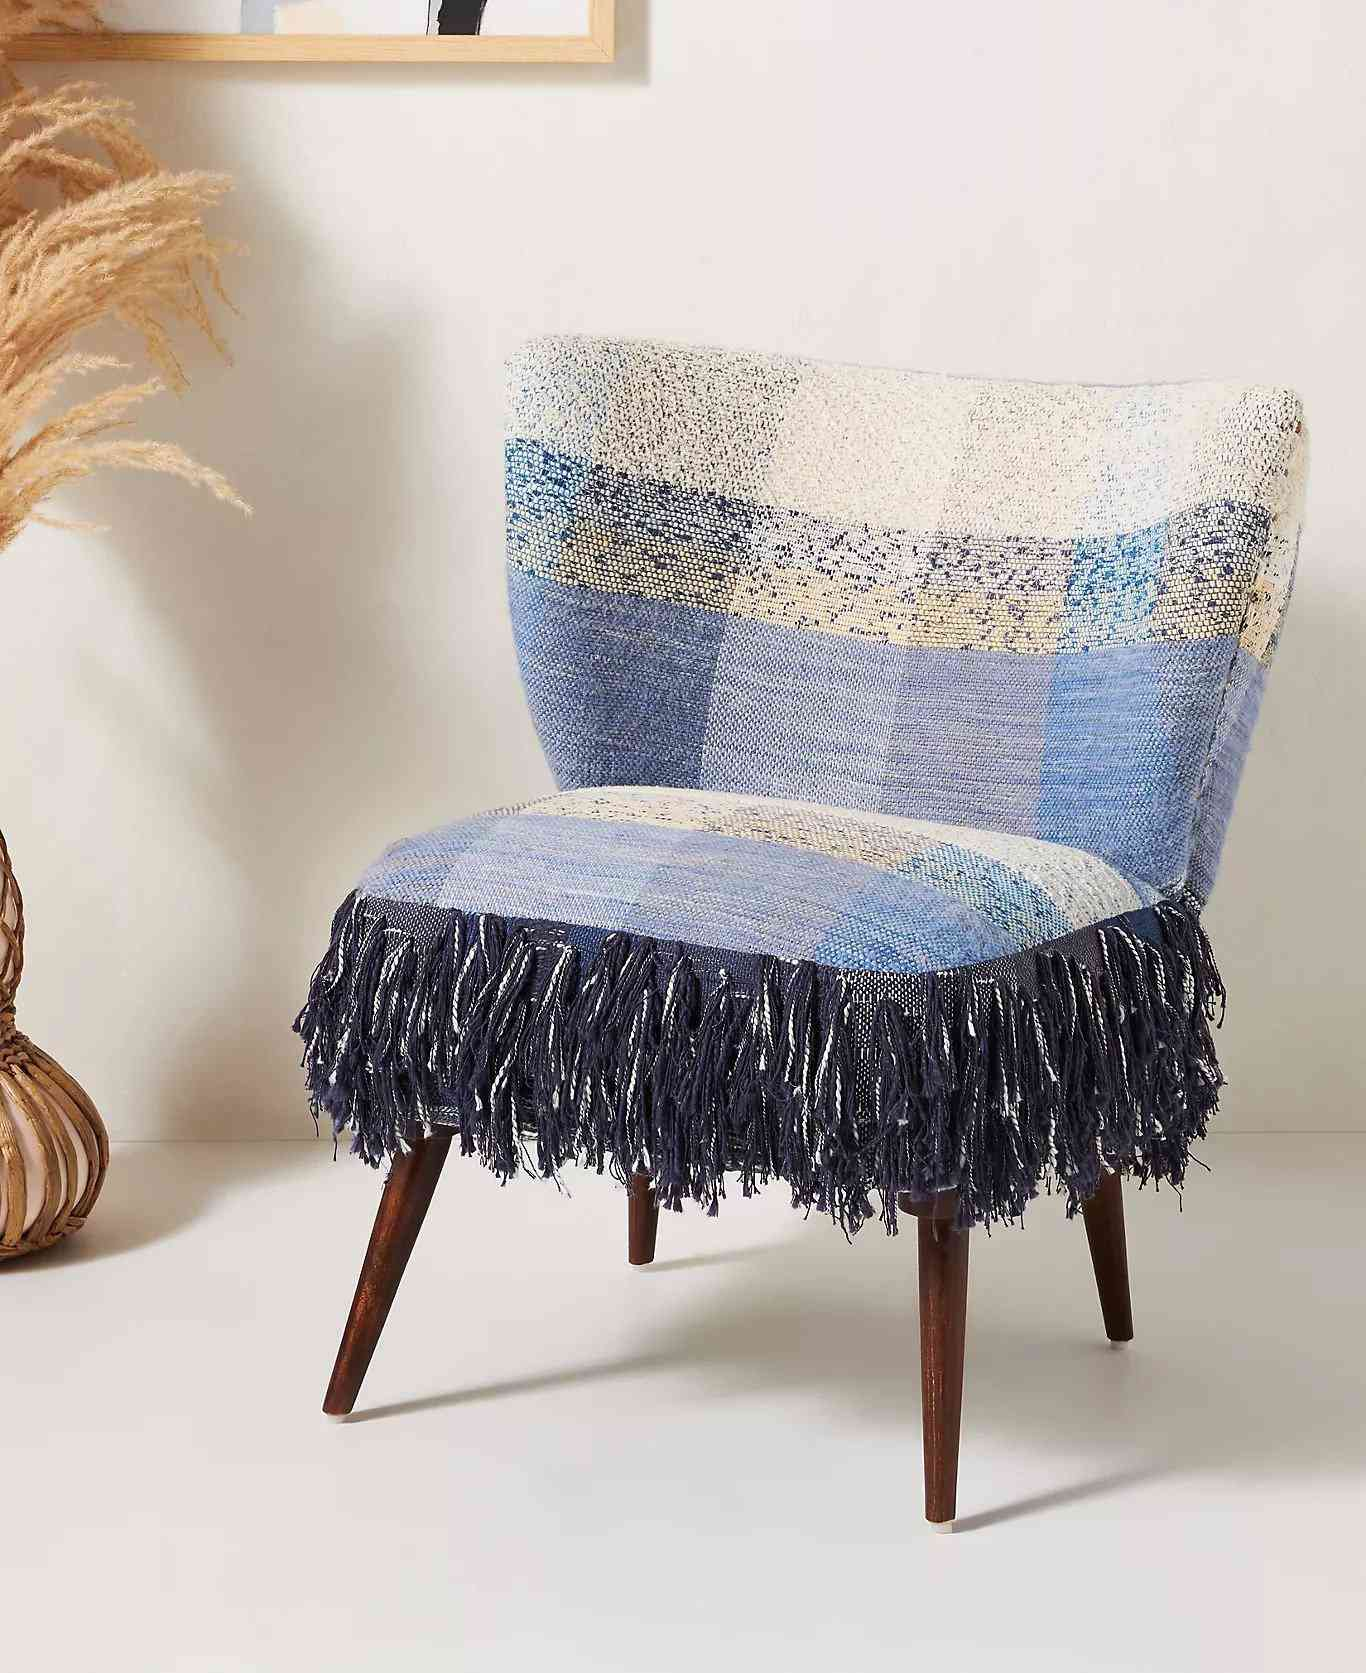 The 10 Best Accent Chairs Of 2021